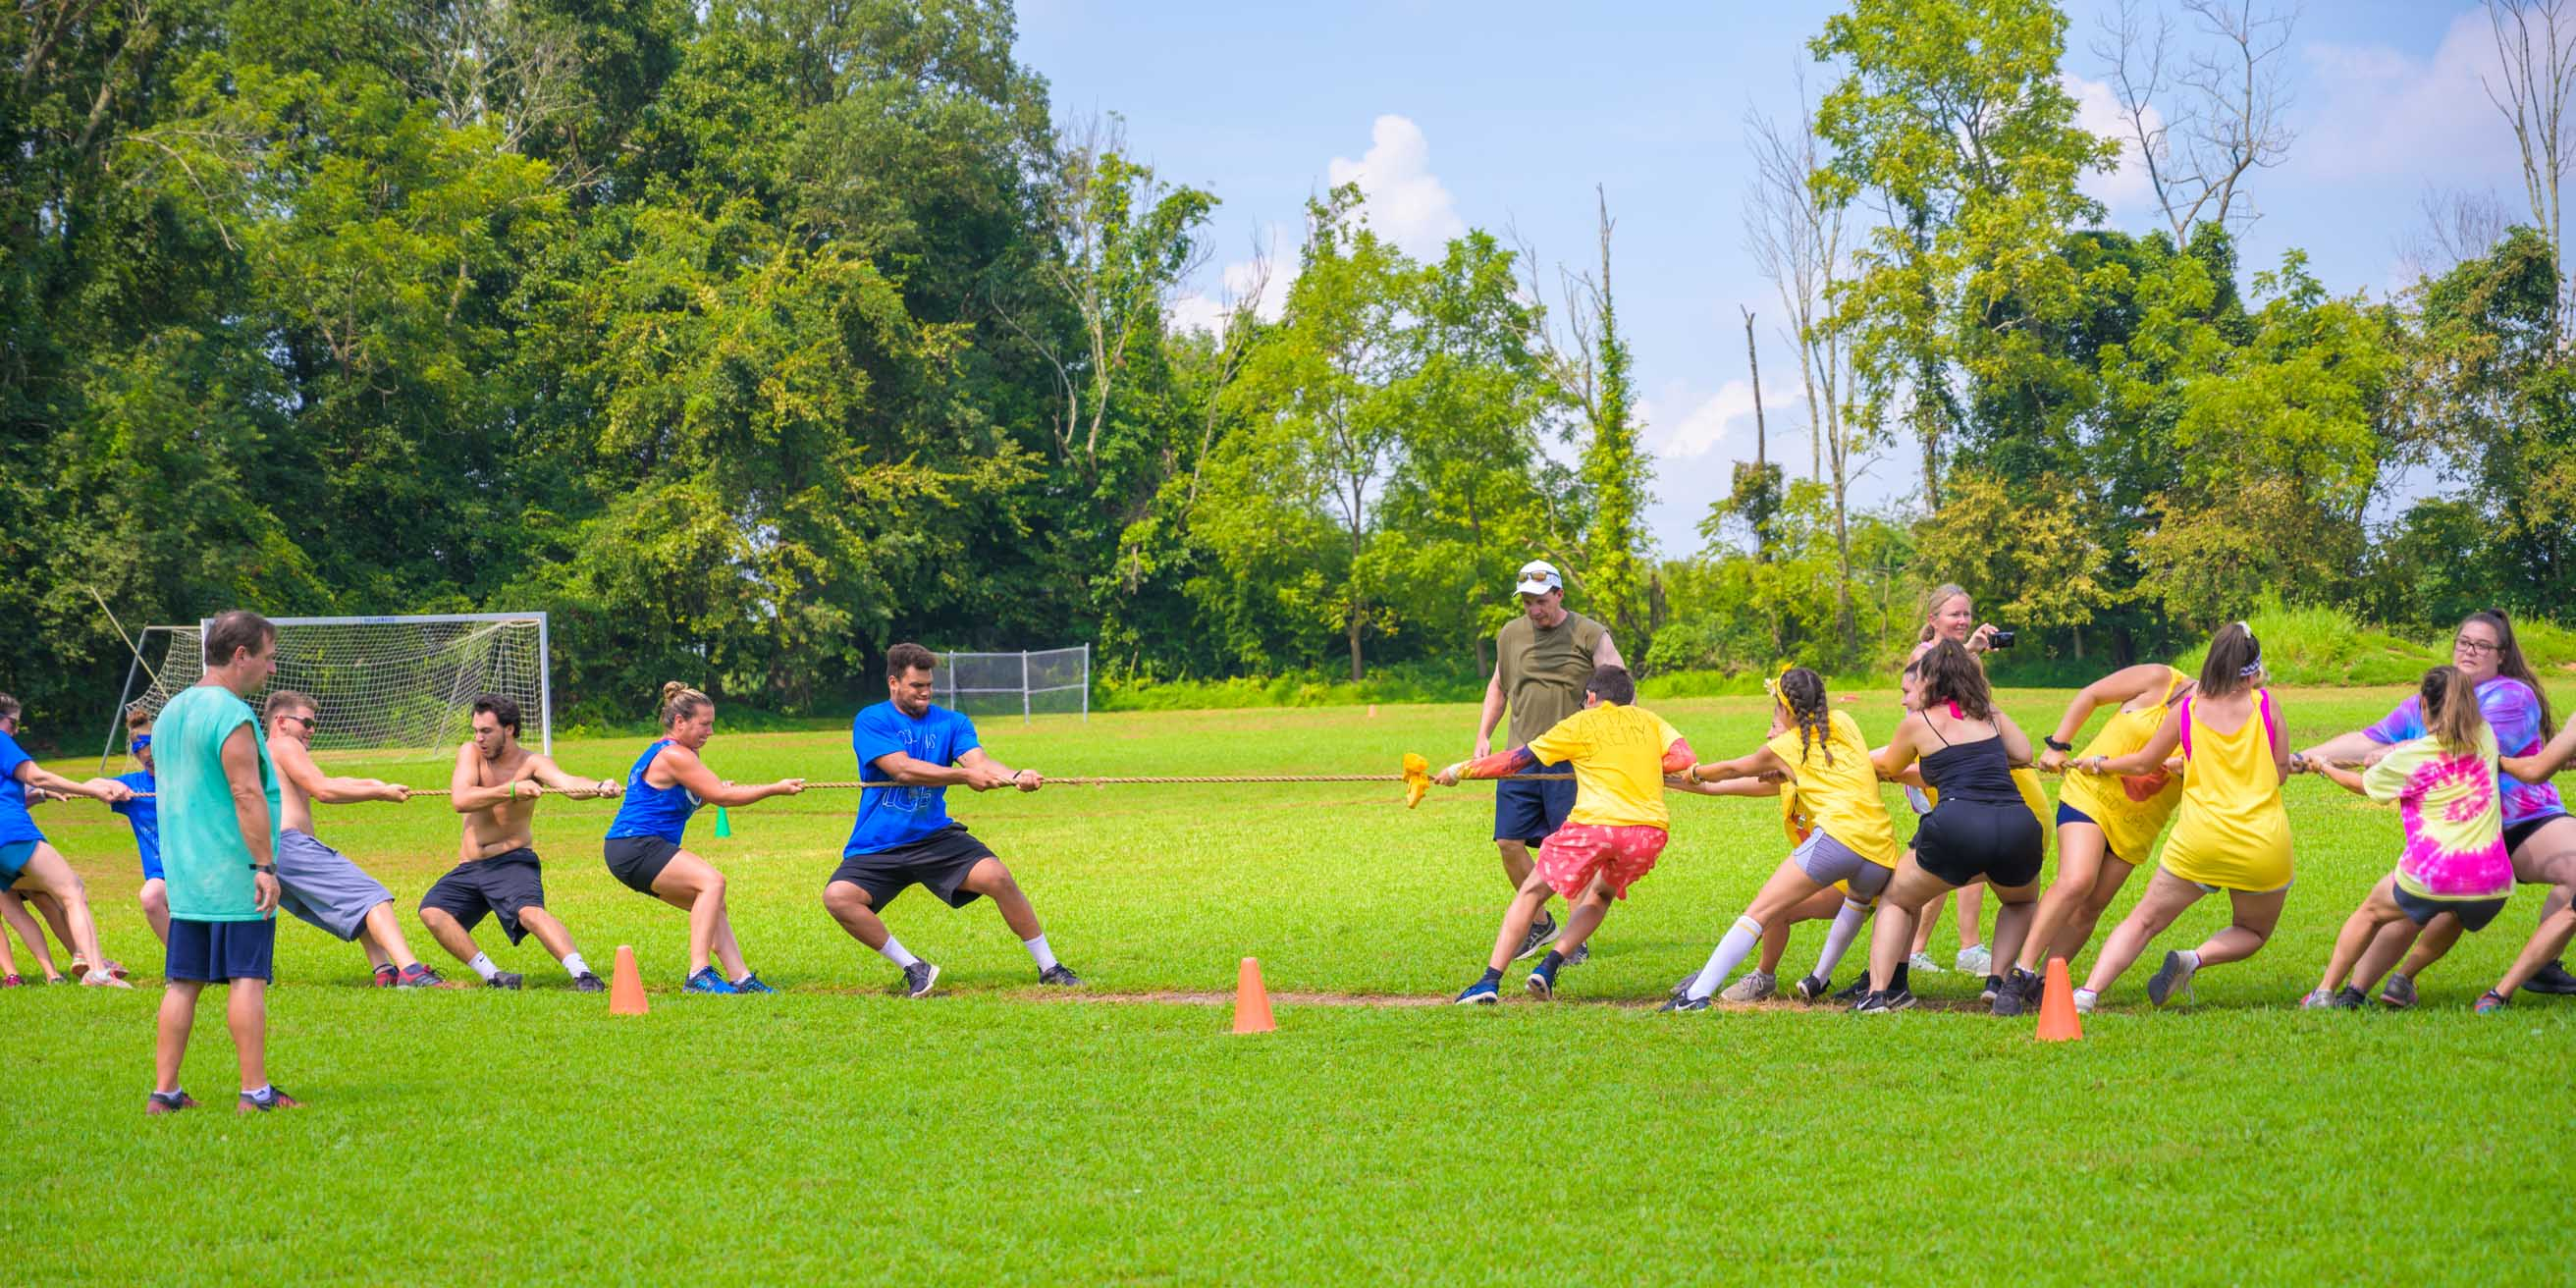 Staff playing tug-of-war during color war